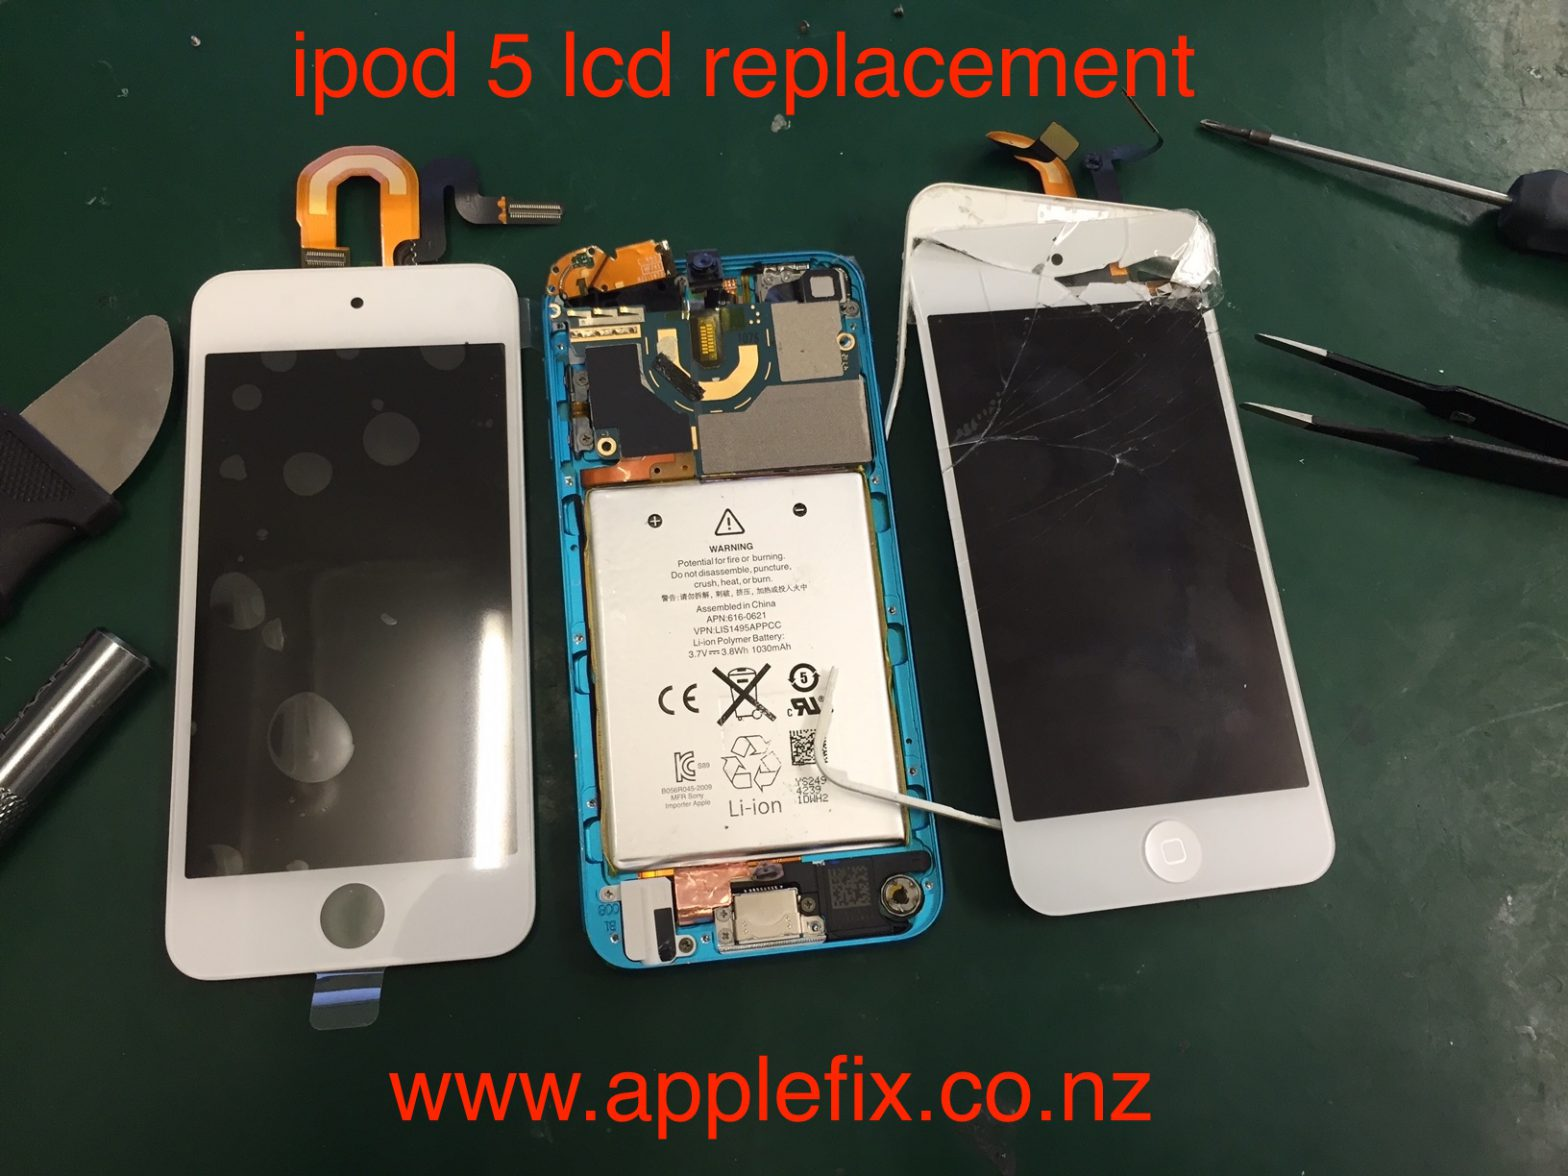 iPod 5 lcd replacement